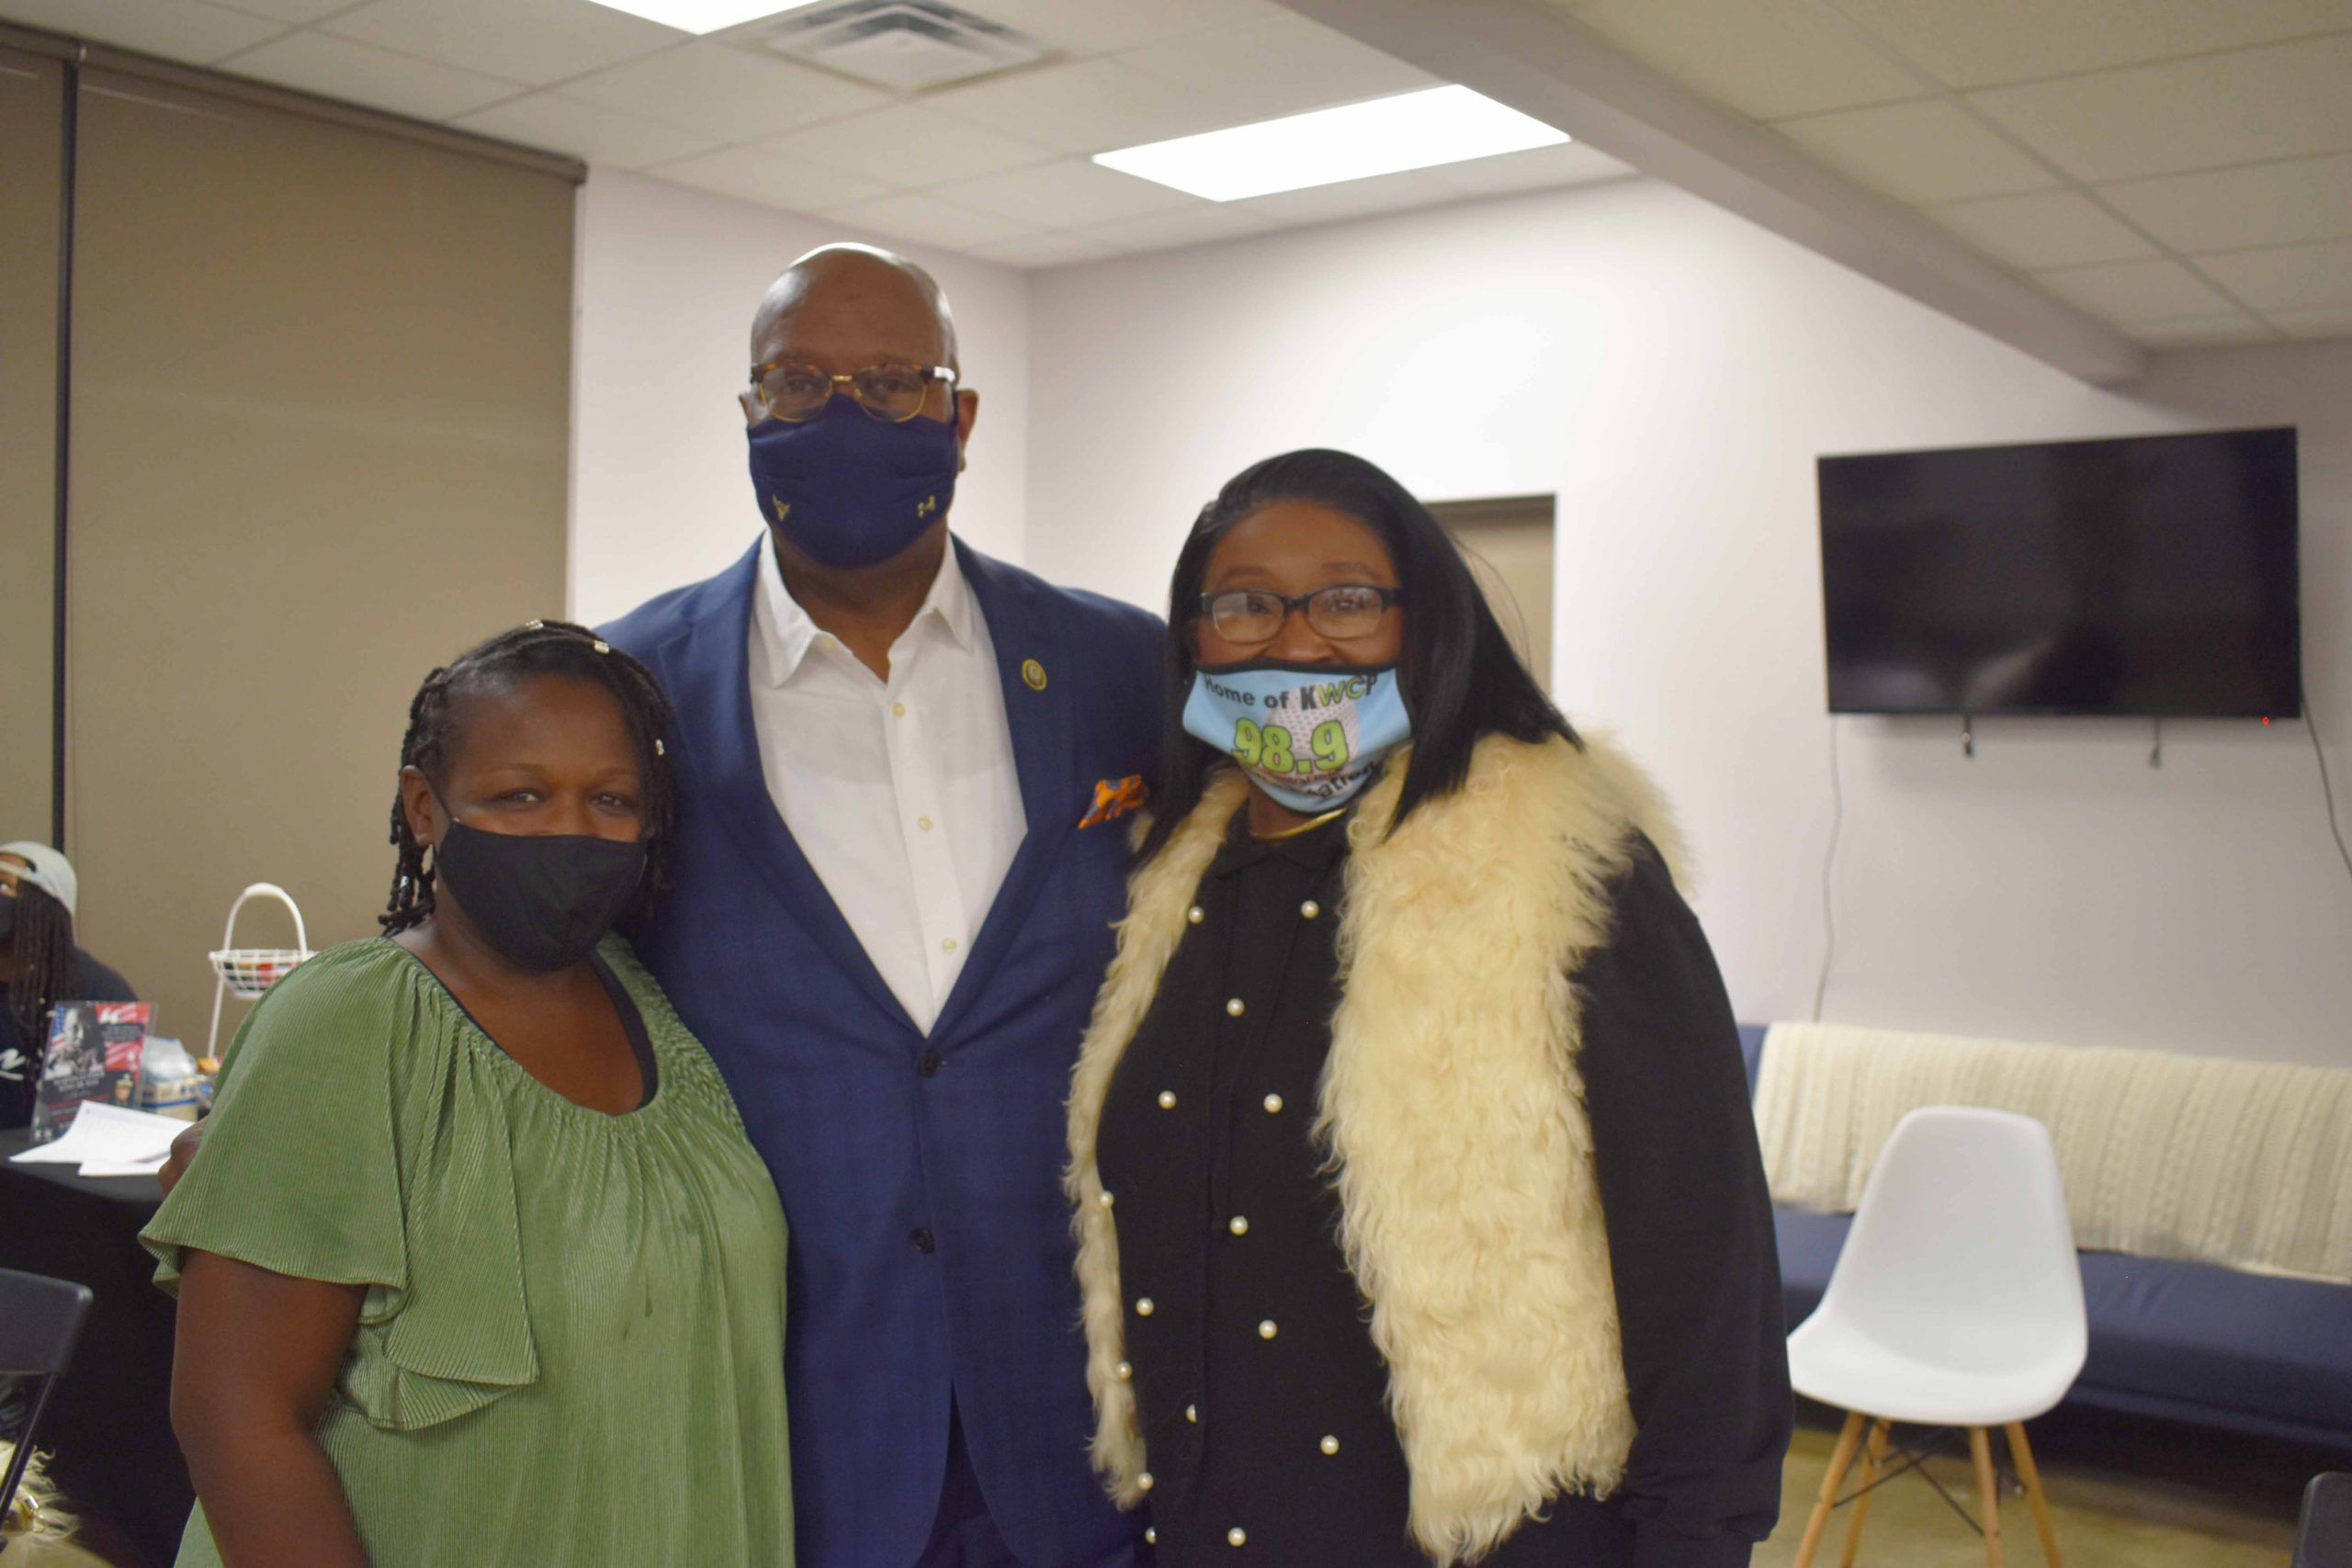 Vickie Hatter, Little Rock Police Department Chief Keith Humphrey, City Director Doris Wright (Ward 6)